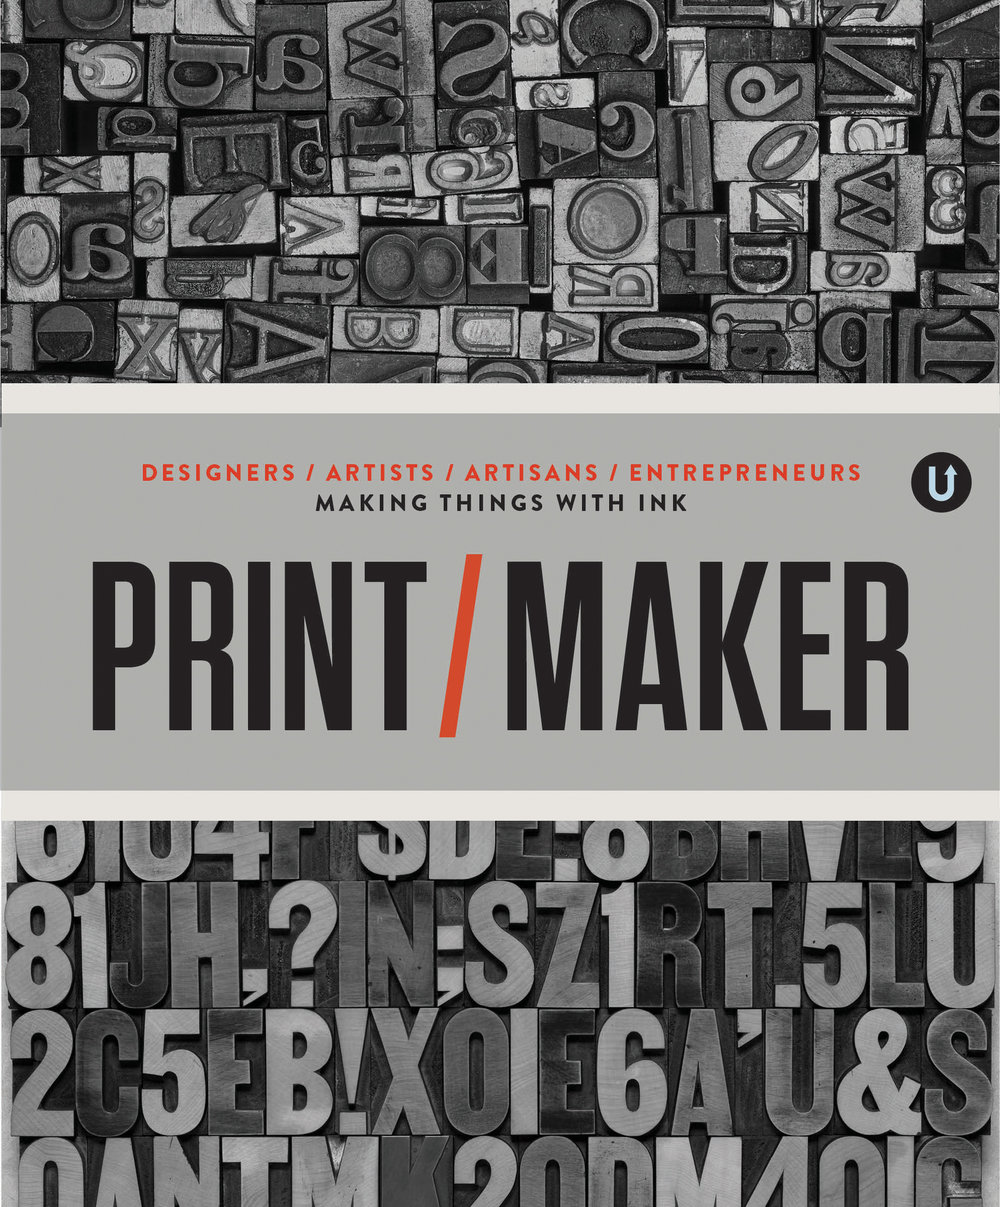 Mockup of the Print / Maker cover. This will be the next book to be released.